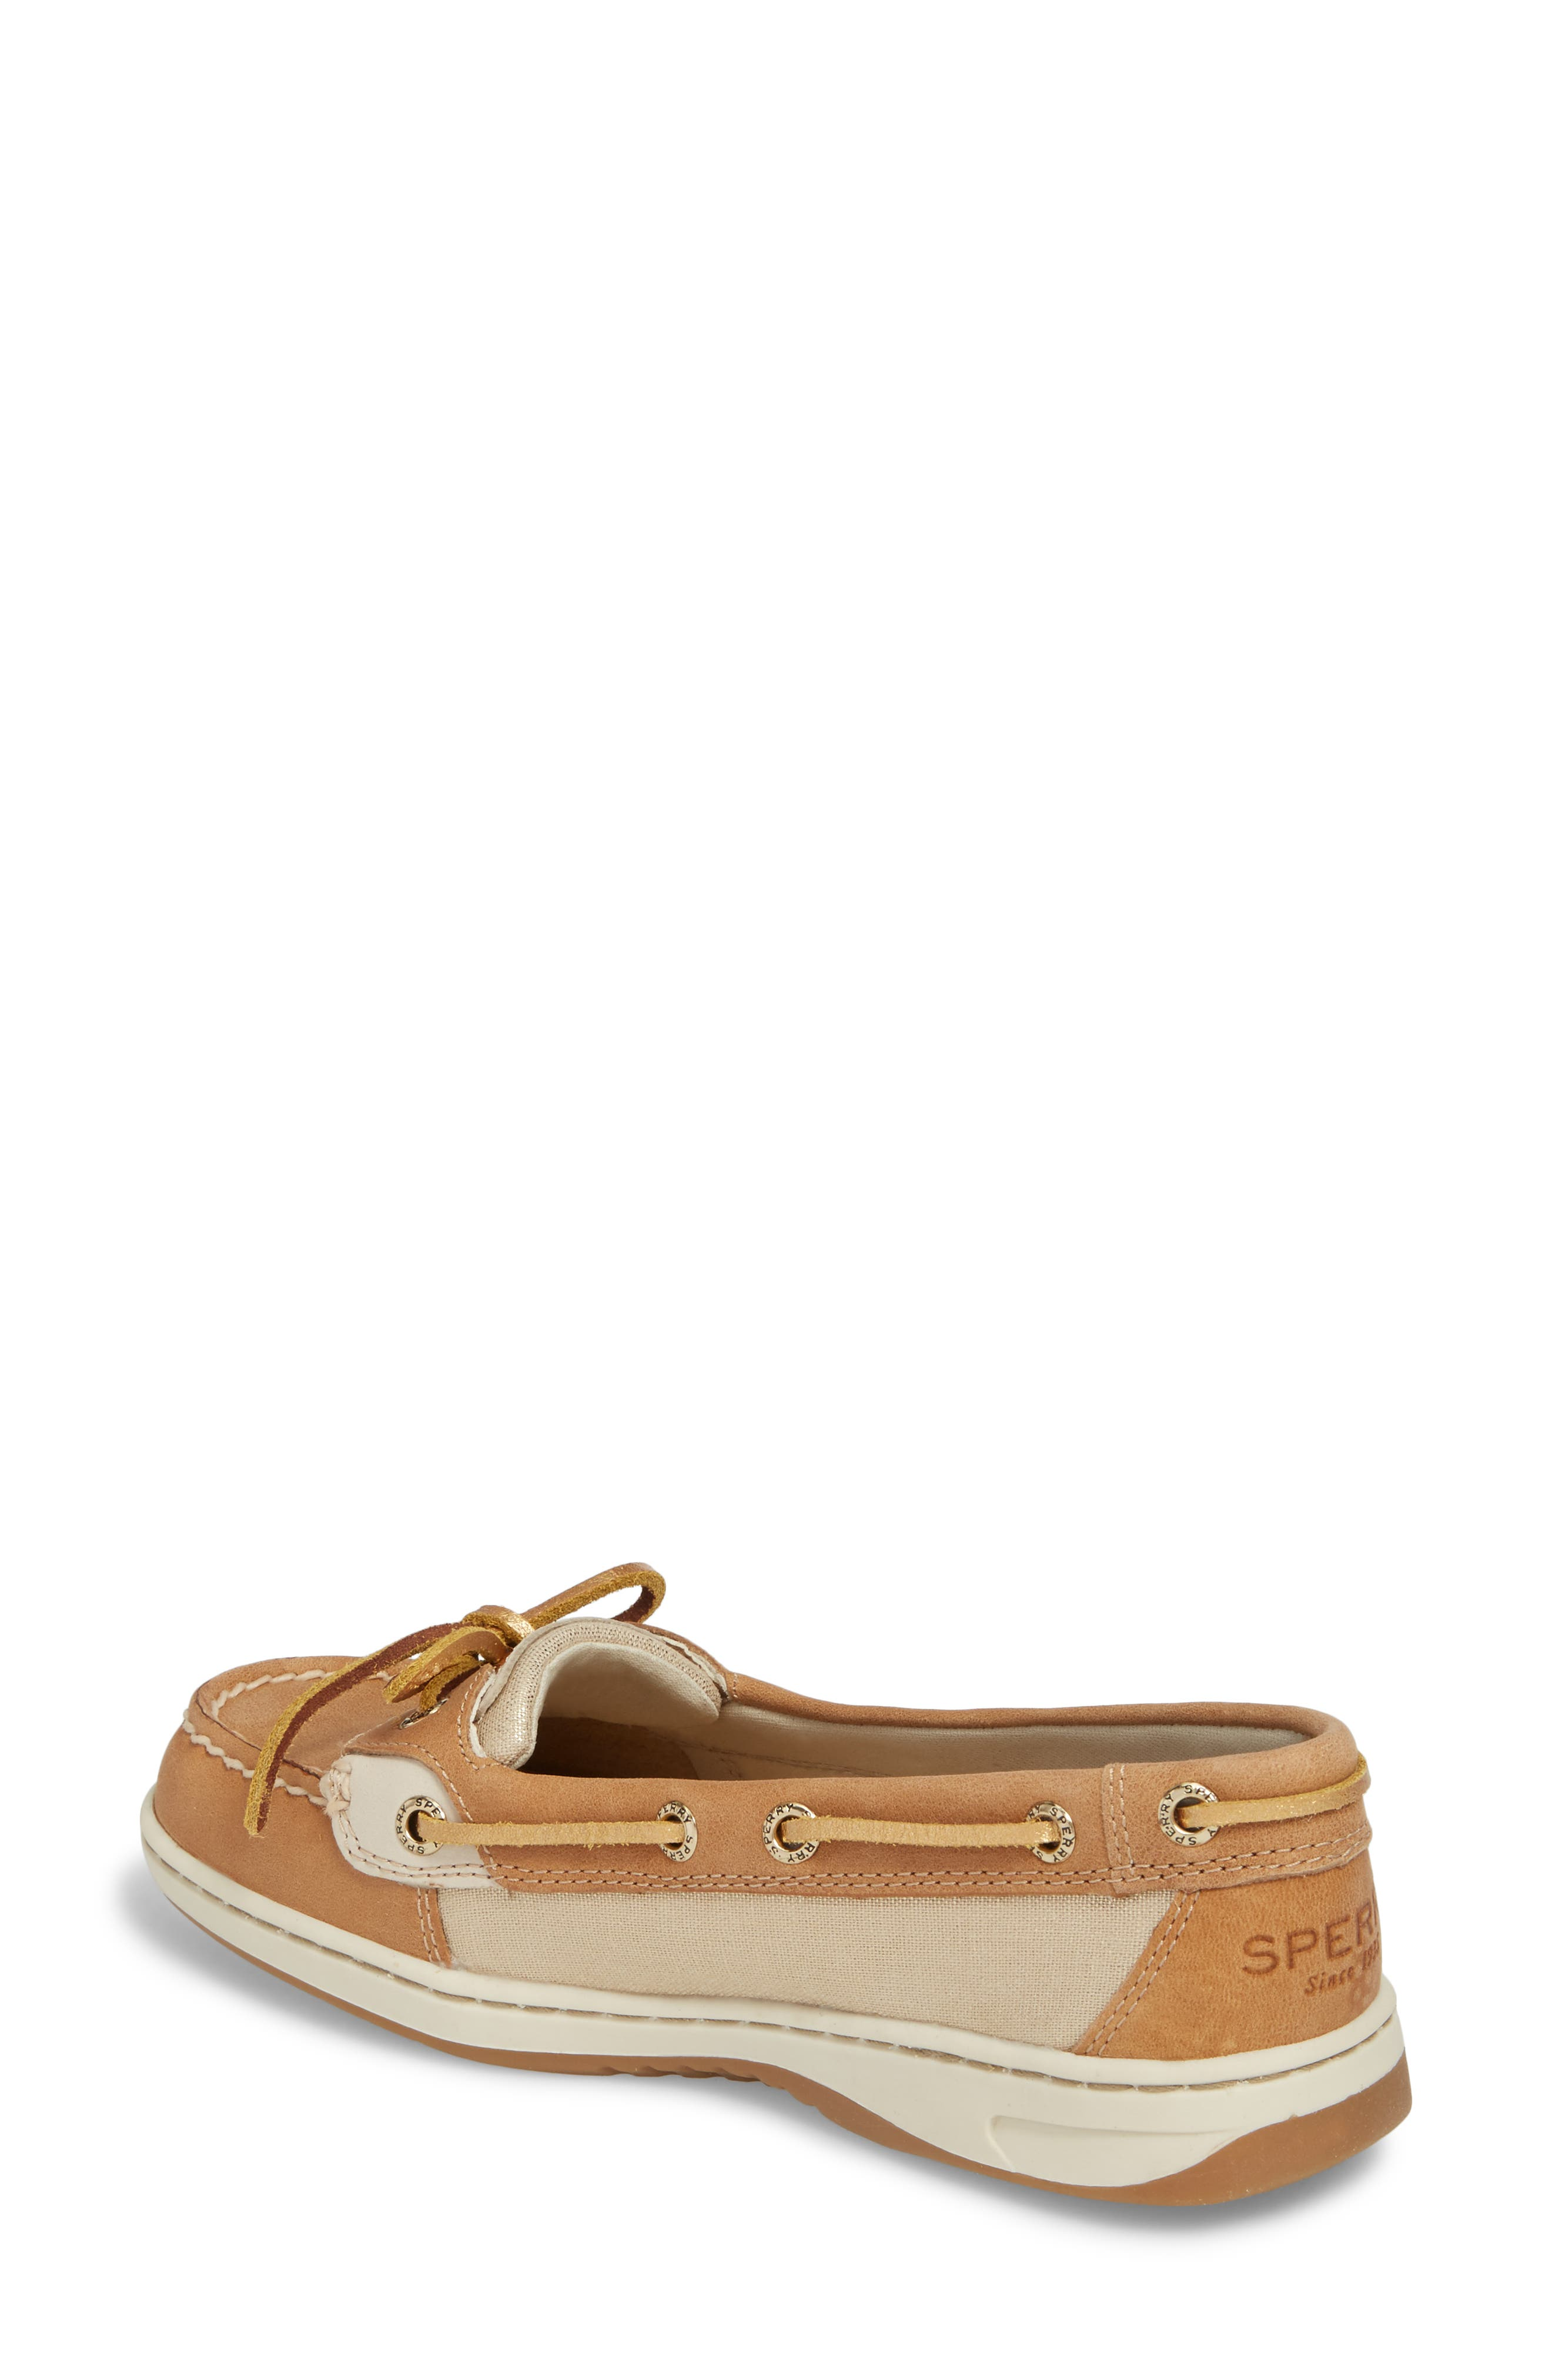 'Angelfish' Boat Shoe,                             Alternate thumbnail 2, color,                             LINEN METALLIC LEATHER